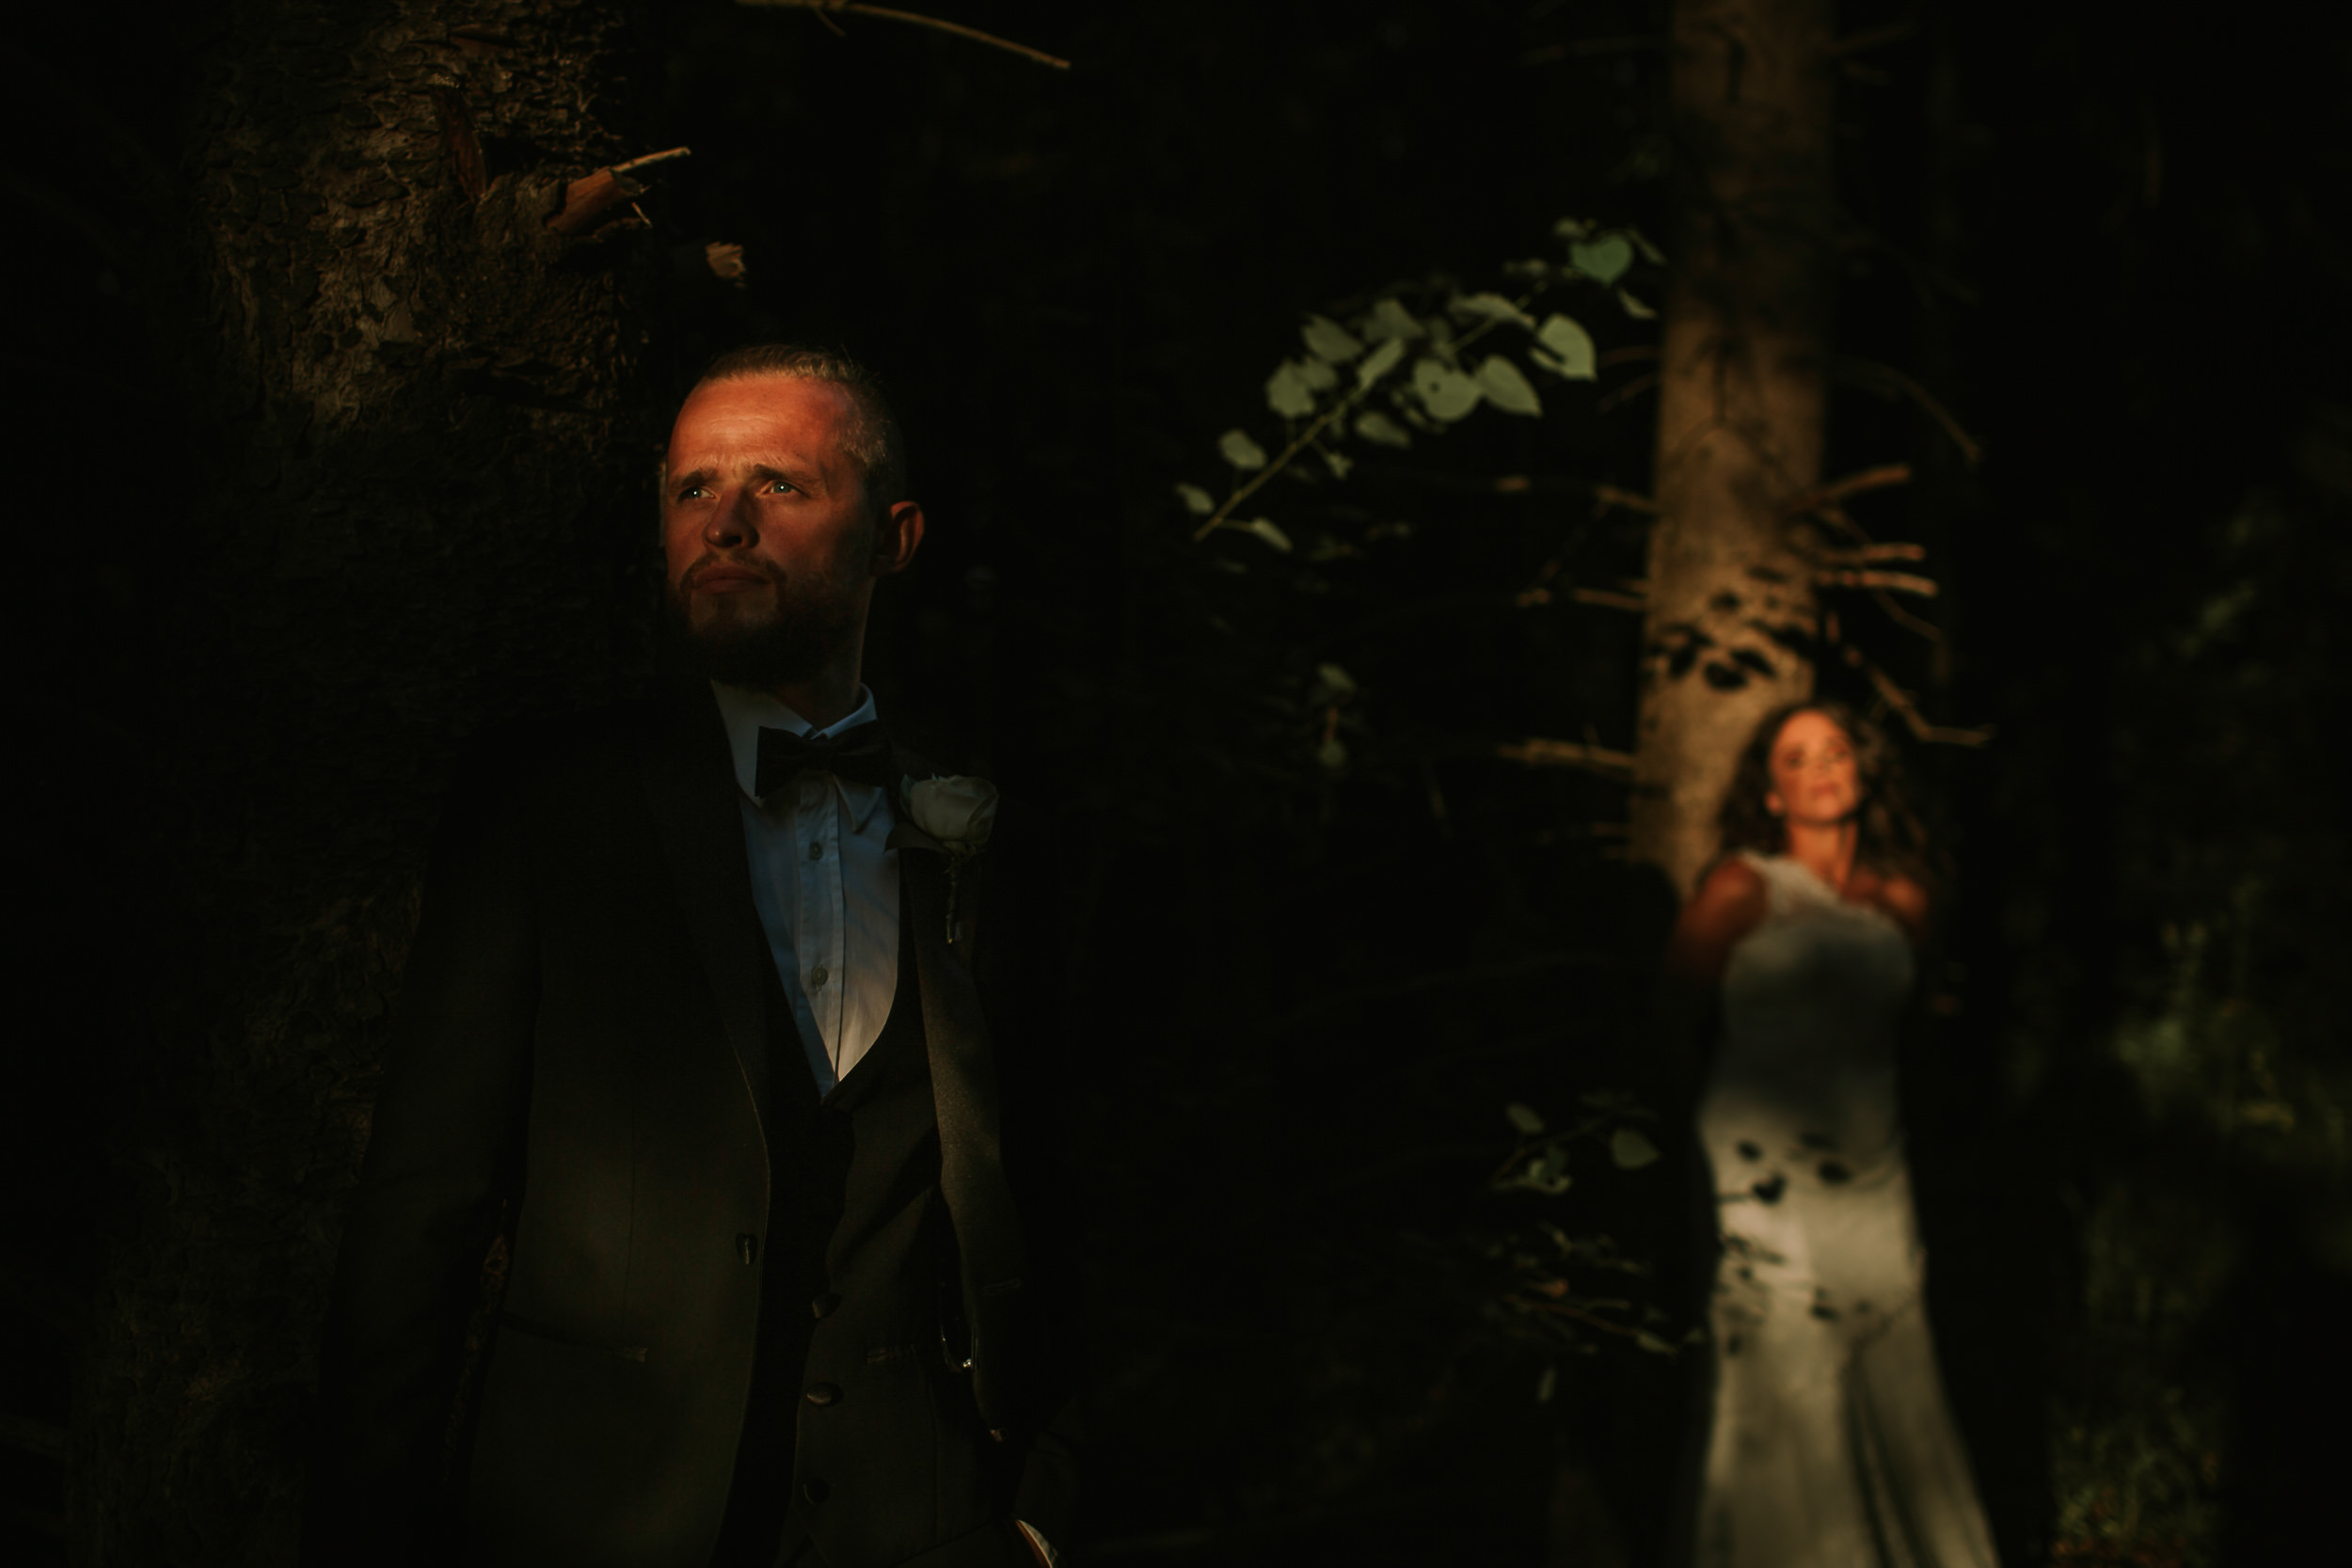 shadowy wedding images - wedding in Toronto - wedding portraits